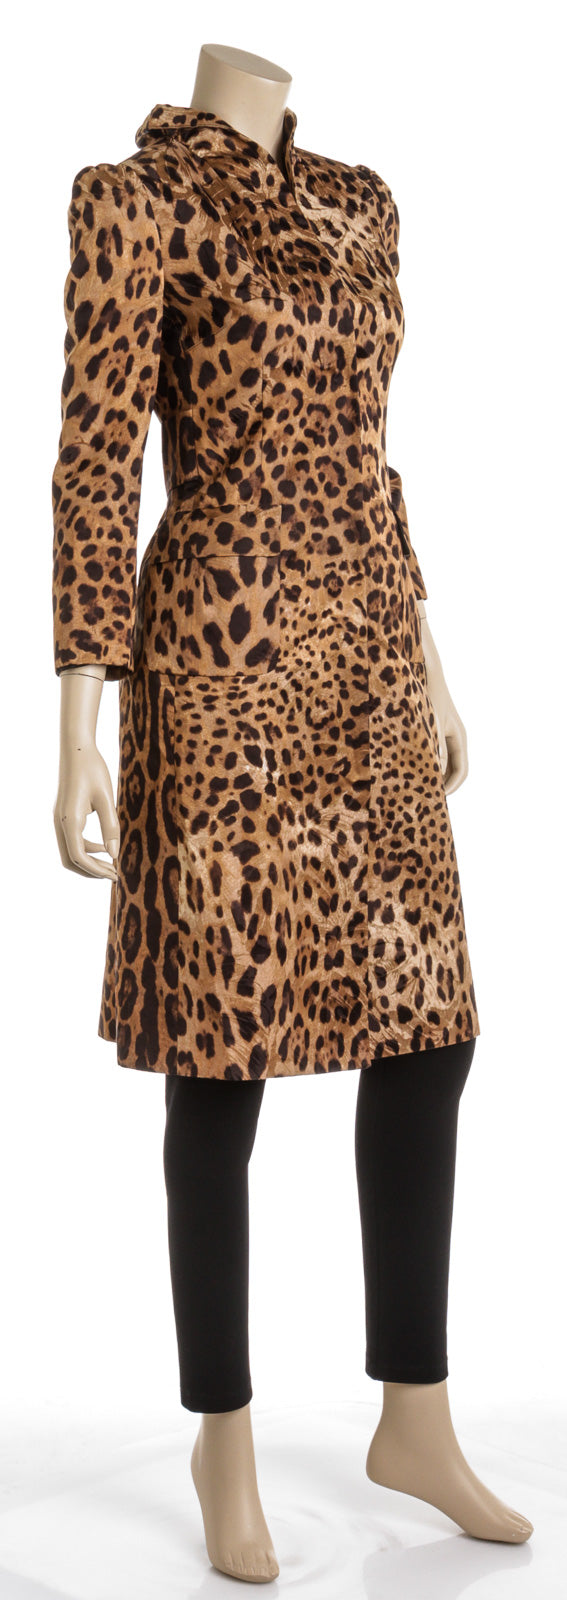 Dolce & Gabbana Brown Leopard Print Cotton Trench Coat (Size 38)